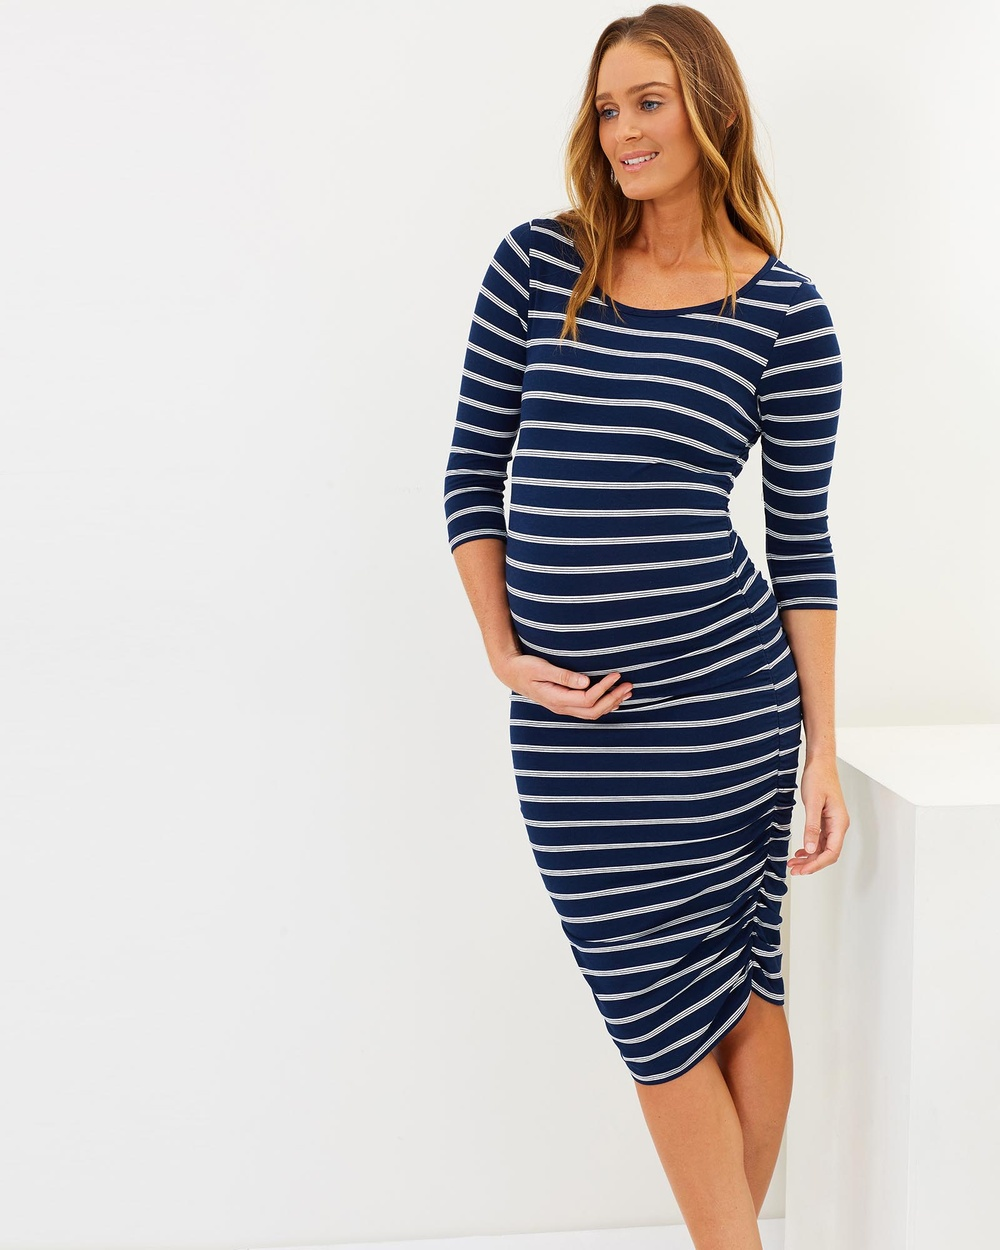 Angel Maternity Ruby Joy Bamboo Story Bodycon Maternity Dress Bodycon Dresses Stripe Navy Ruby Joy Bamboo Story Bodycon Maternity Dress